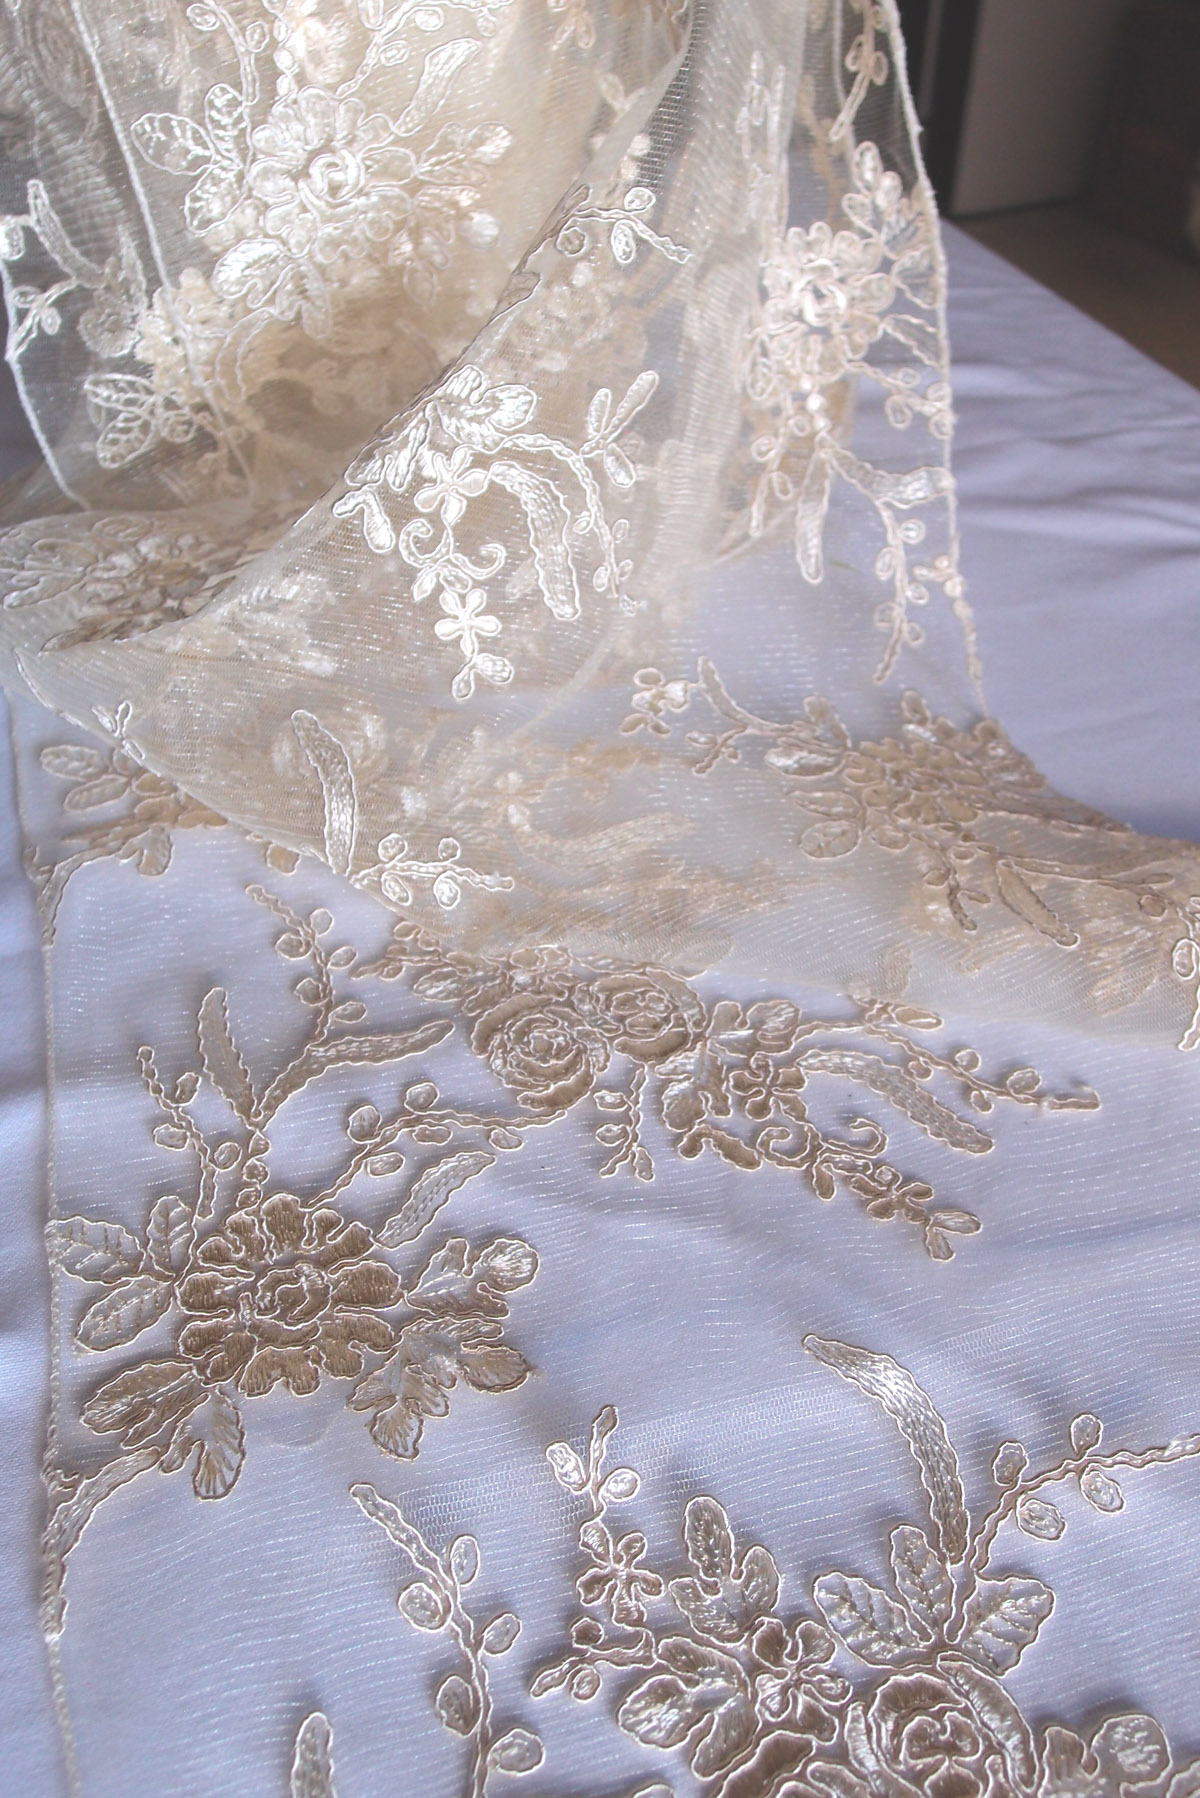 Bulk Lace Table Runners | Beaded Table Runner | Lace Table Runners